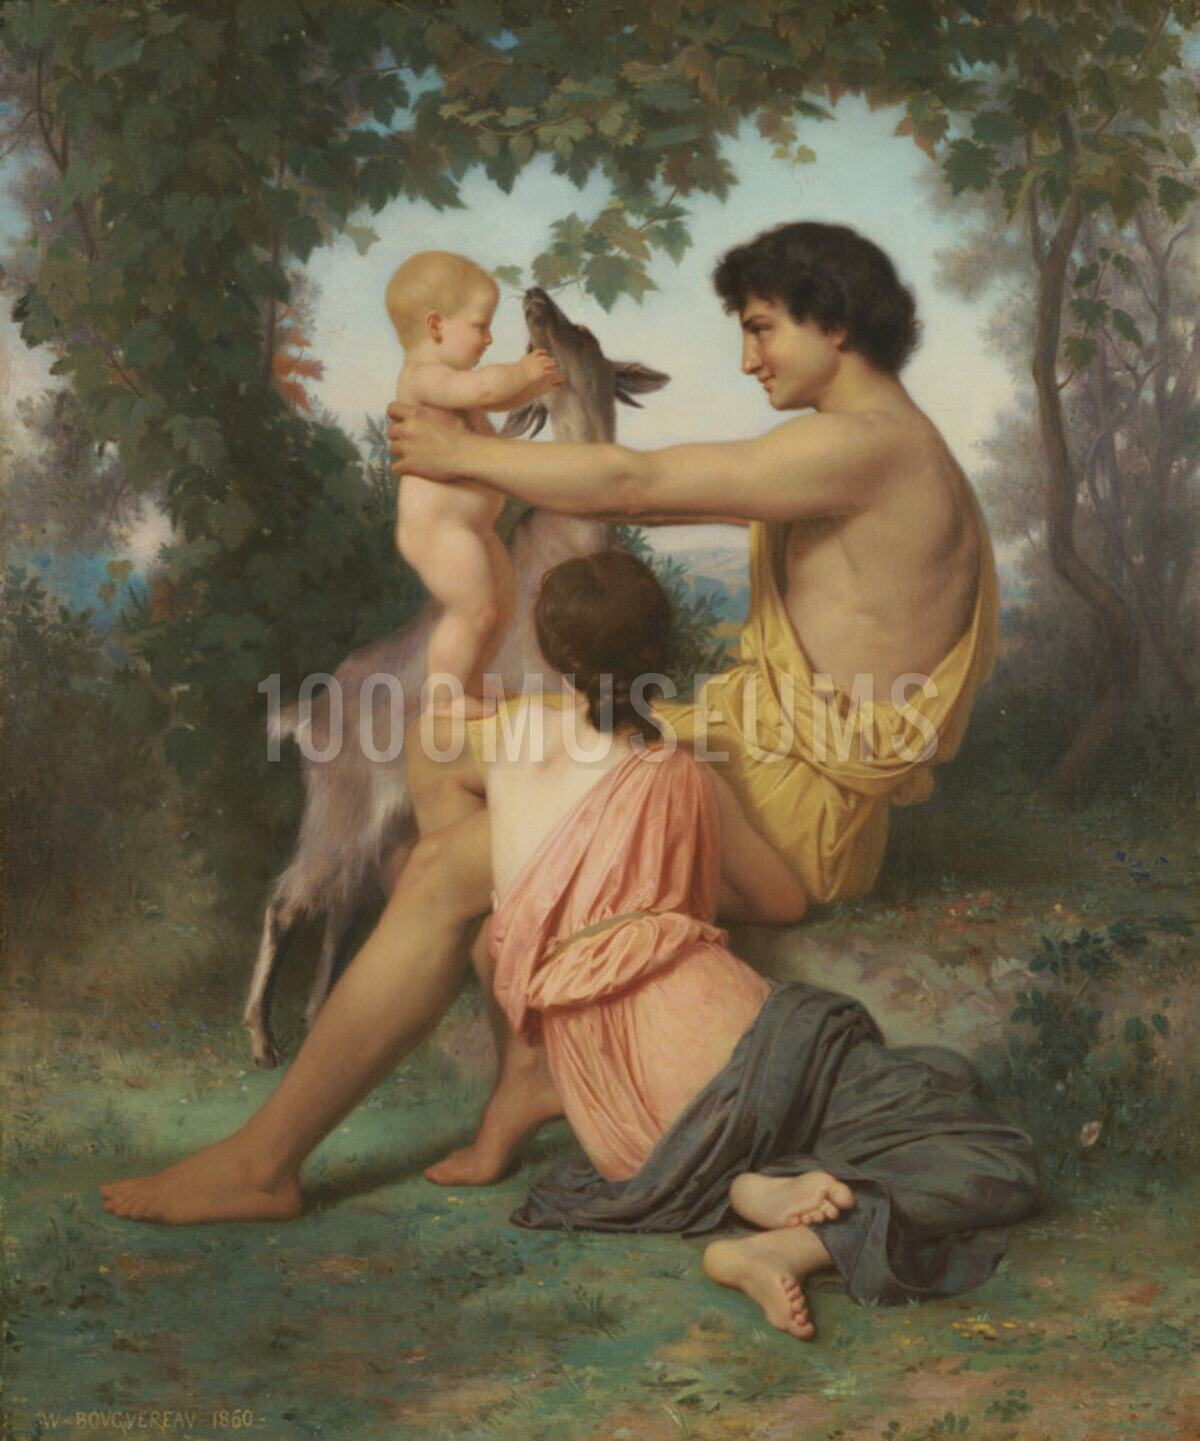 WILLIAM BOUGUEREAU FRENCH REALIST CLASSICAL DREAM OF SPRING ART